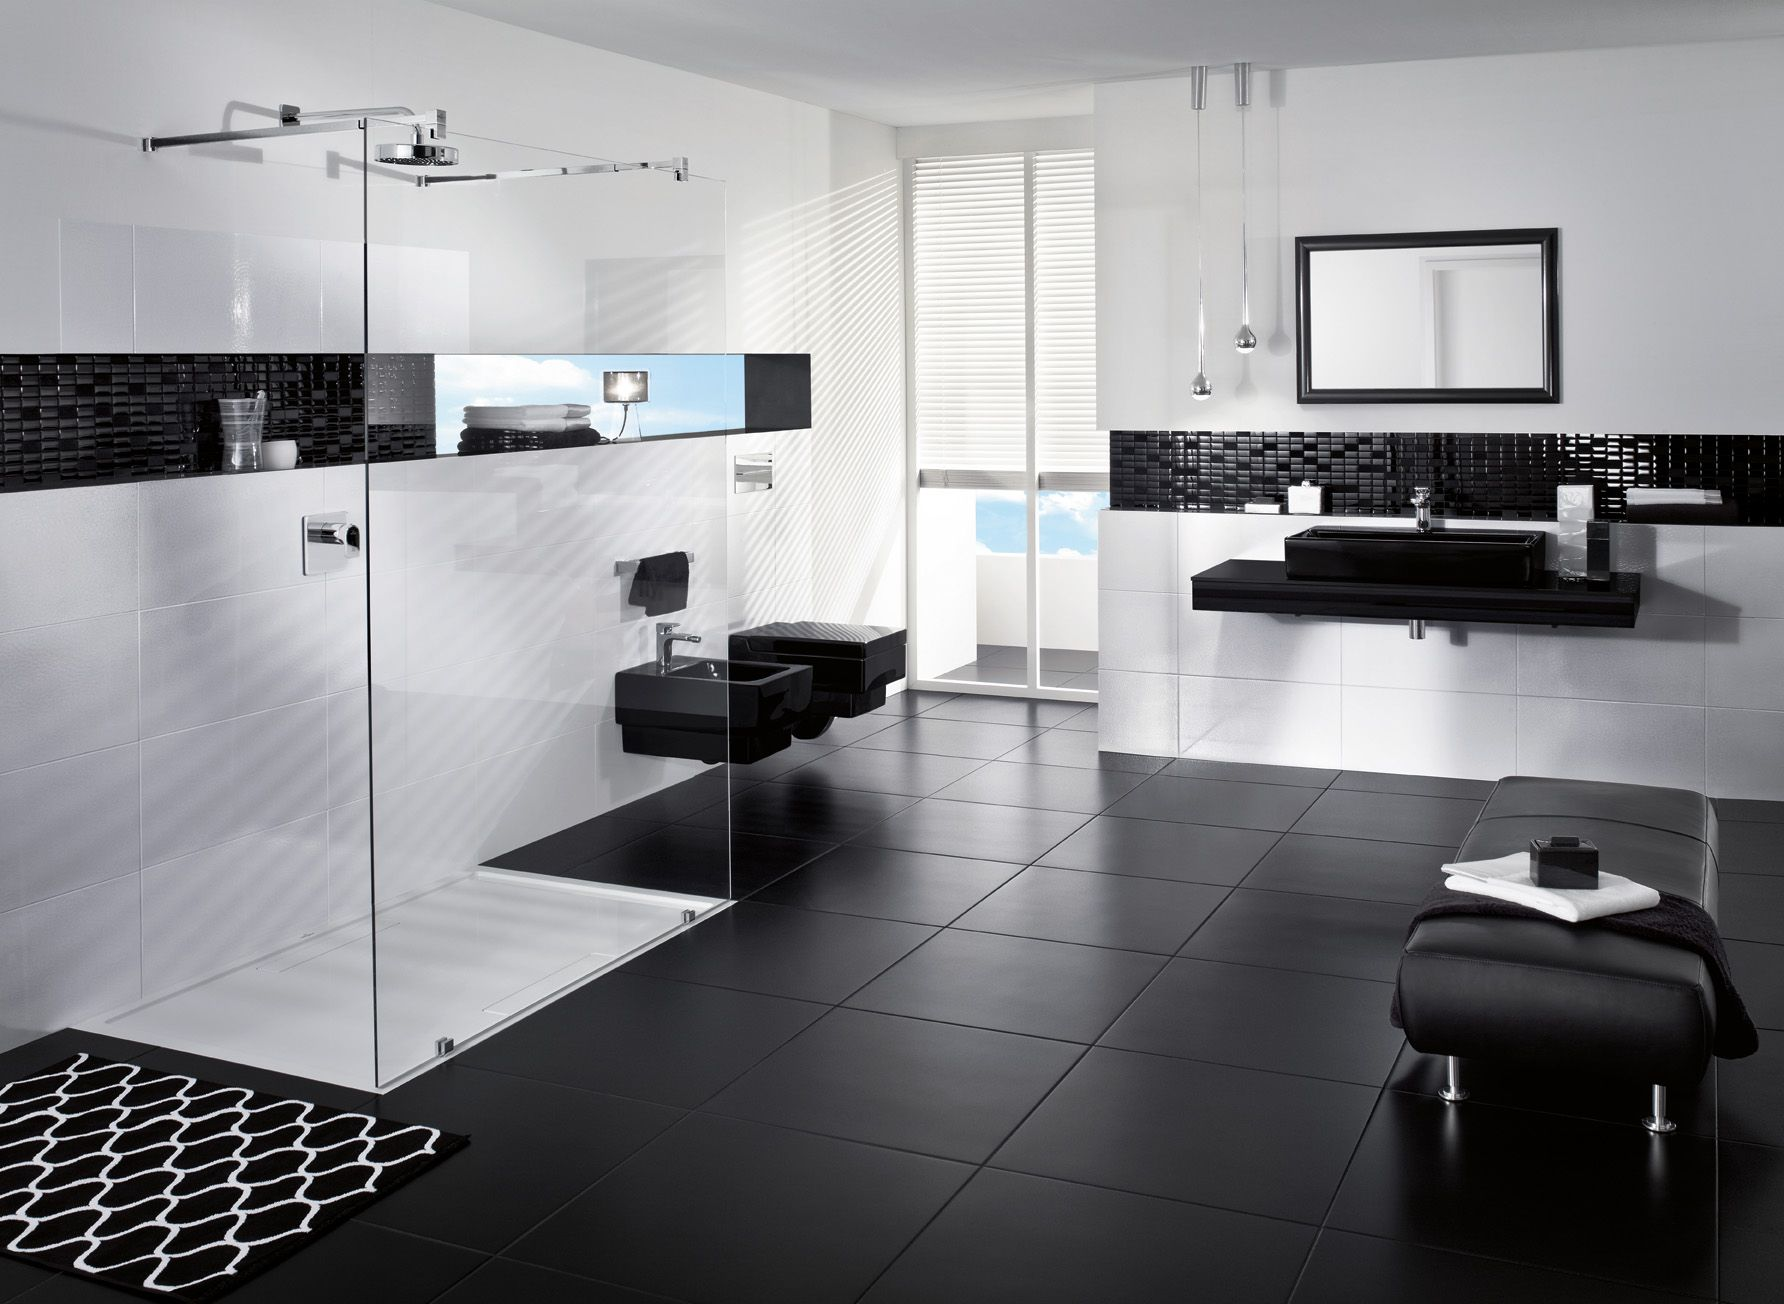 Luxe badkamer - !Badkamer | Pinterest - Luxe, Badkamer en Luxe ...